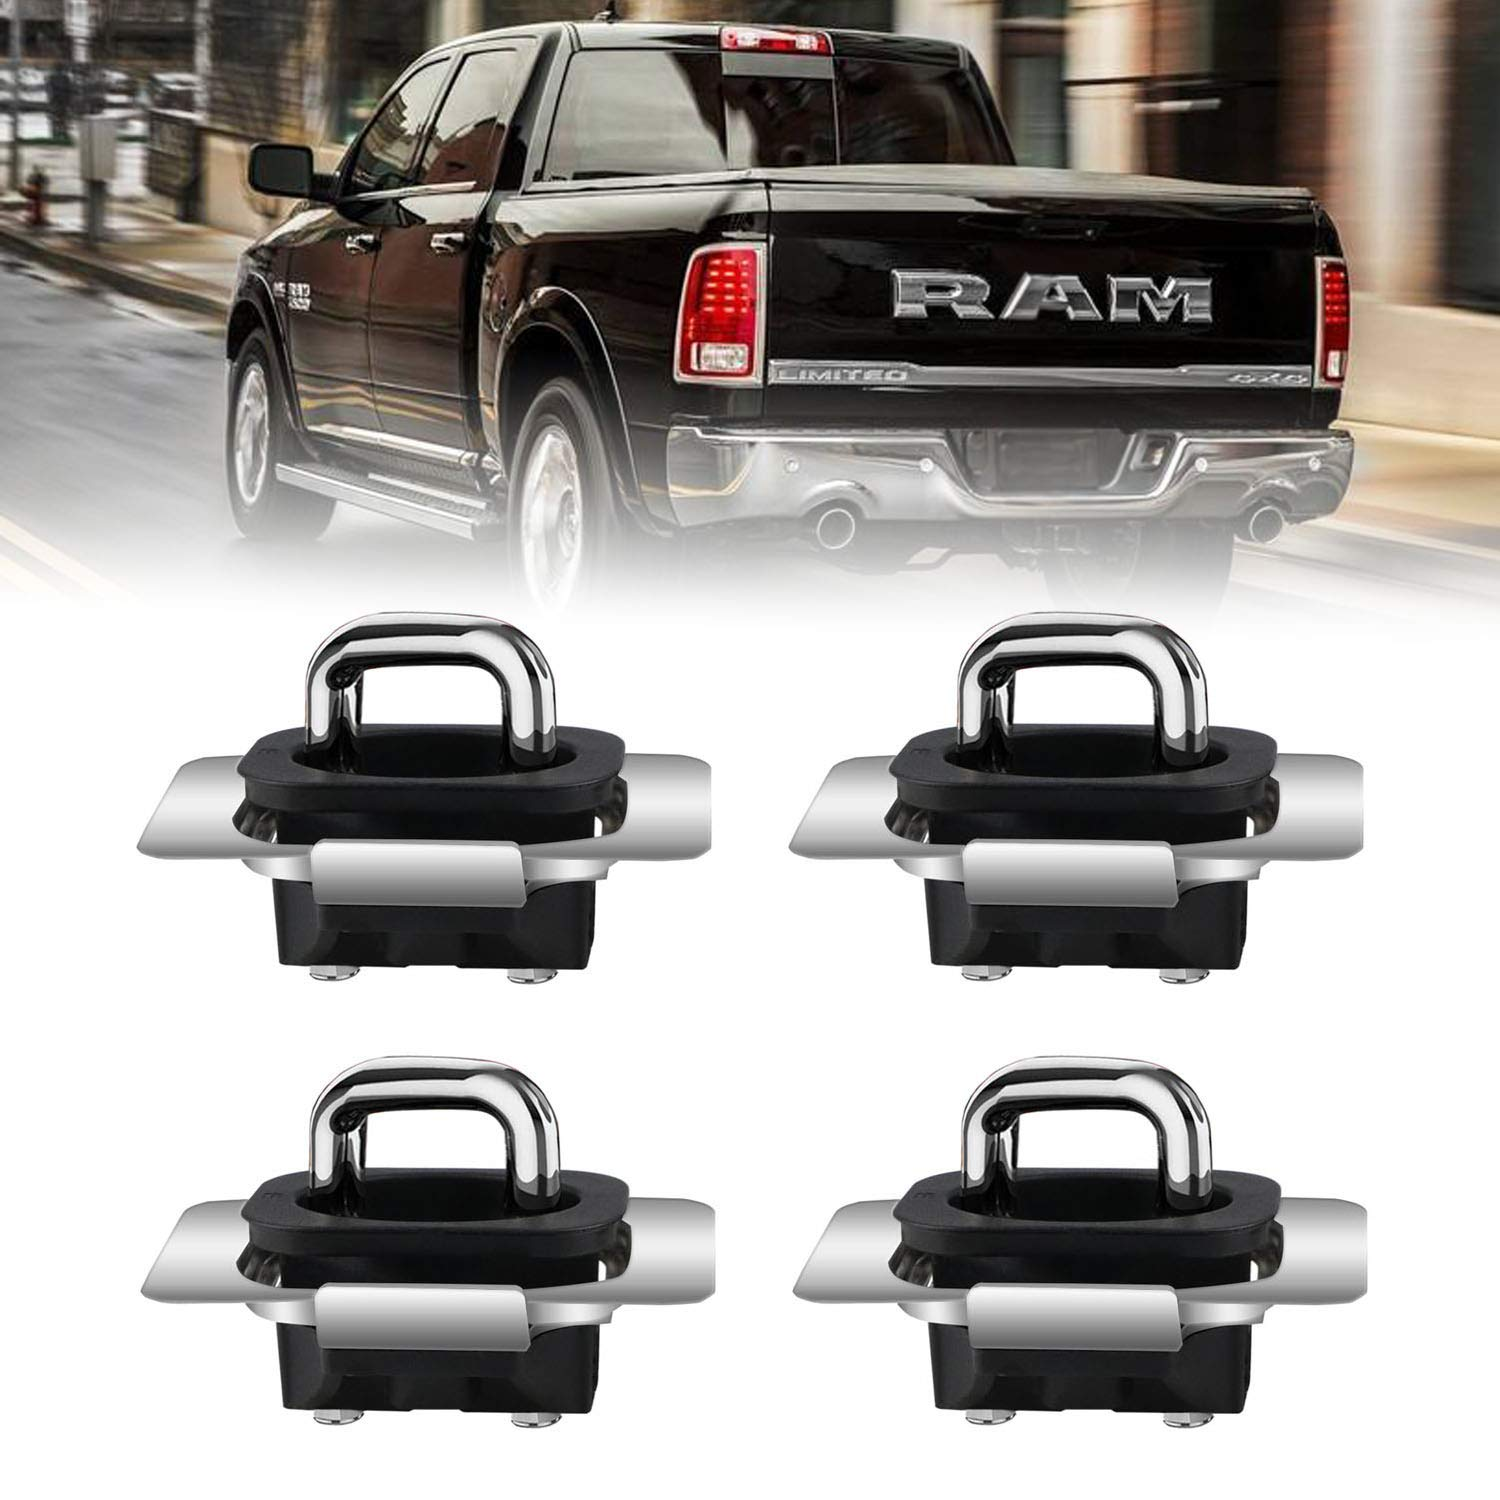 Dibanyou for 2009-2018 Dodge Ram 1500 2500 3500 Tie Down Anchors Truck Bed Side Wall Anchors 4 Pack